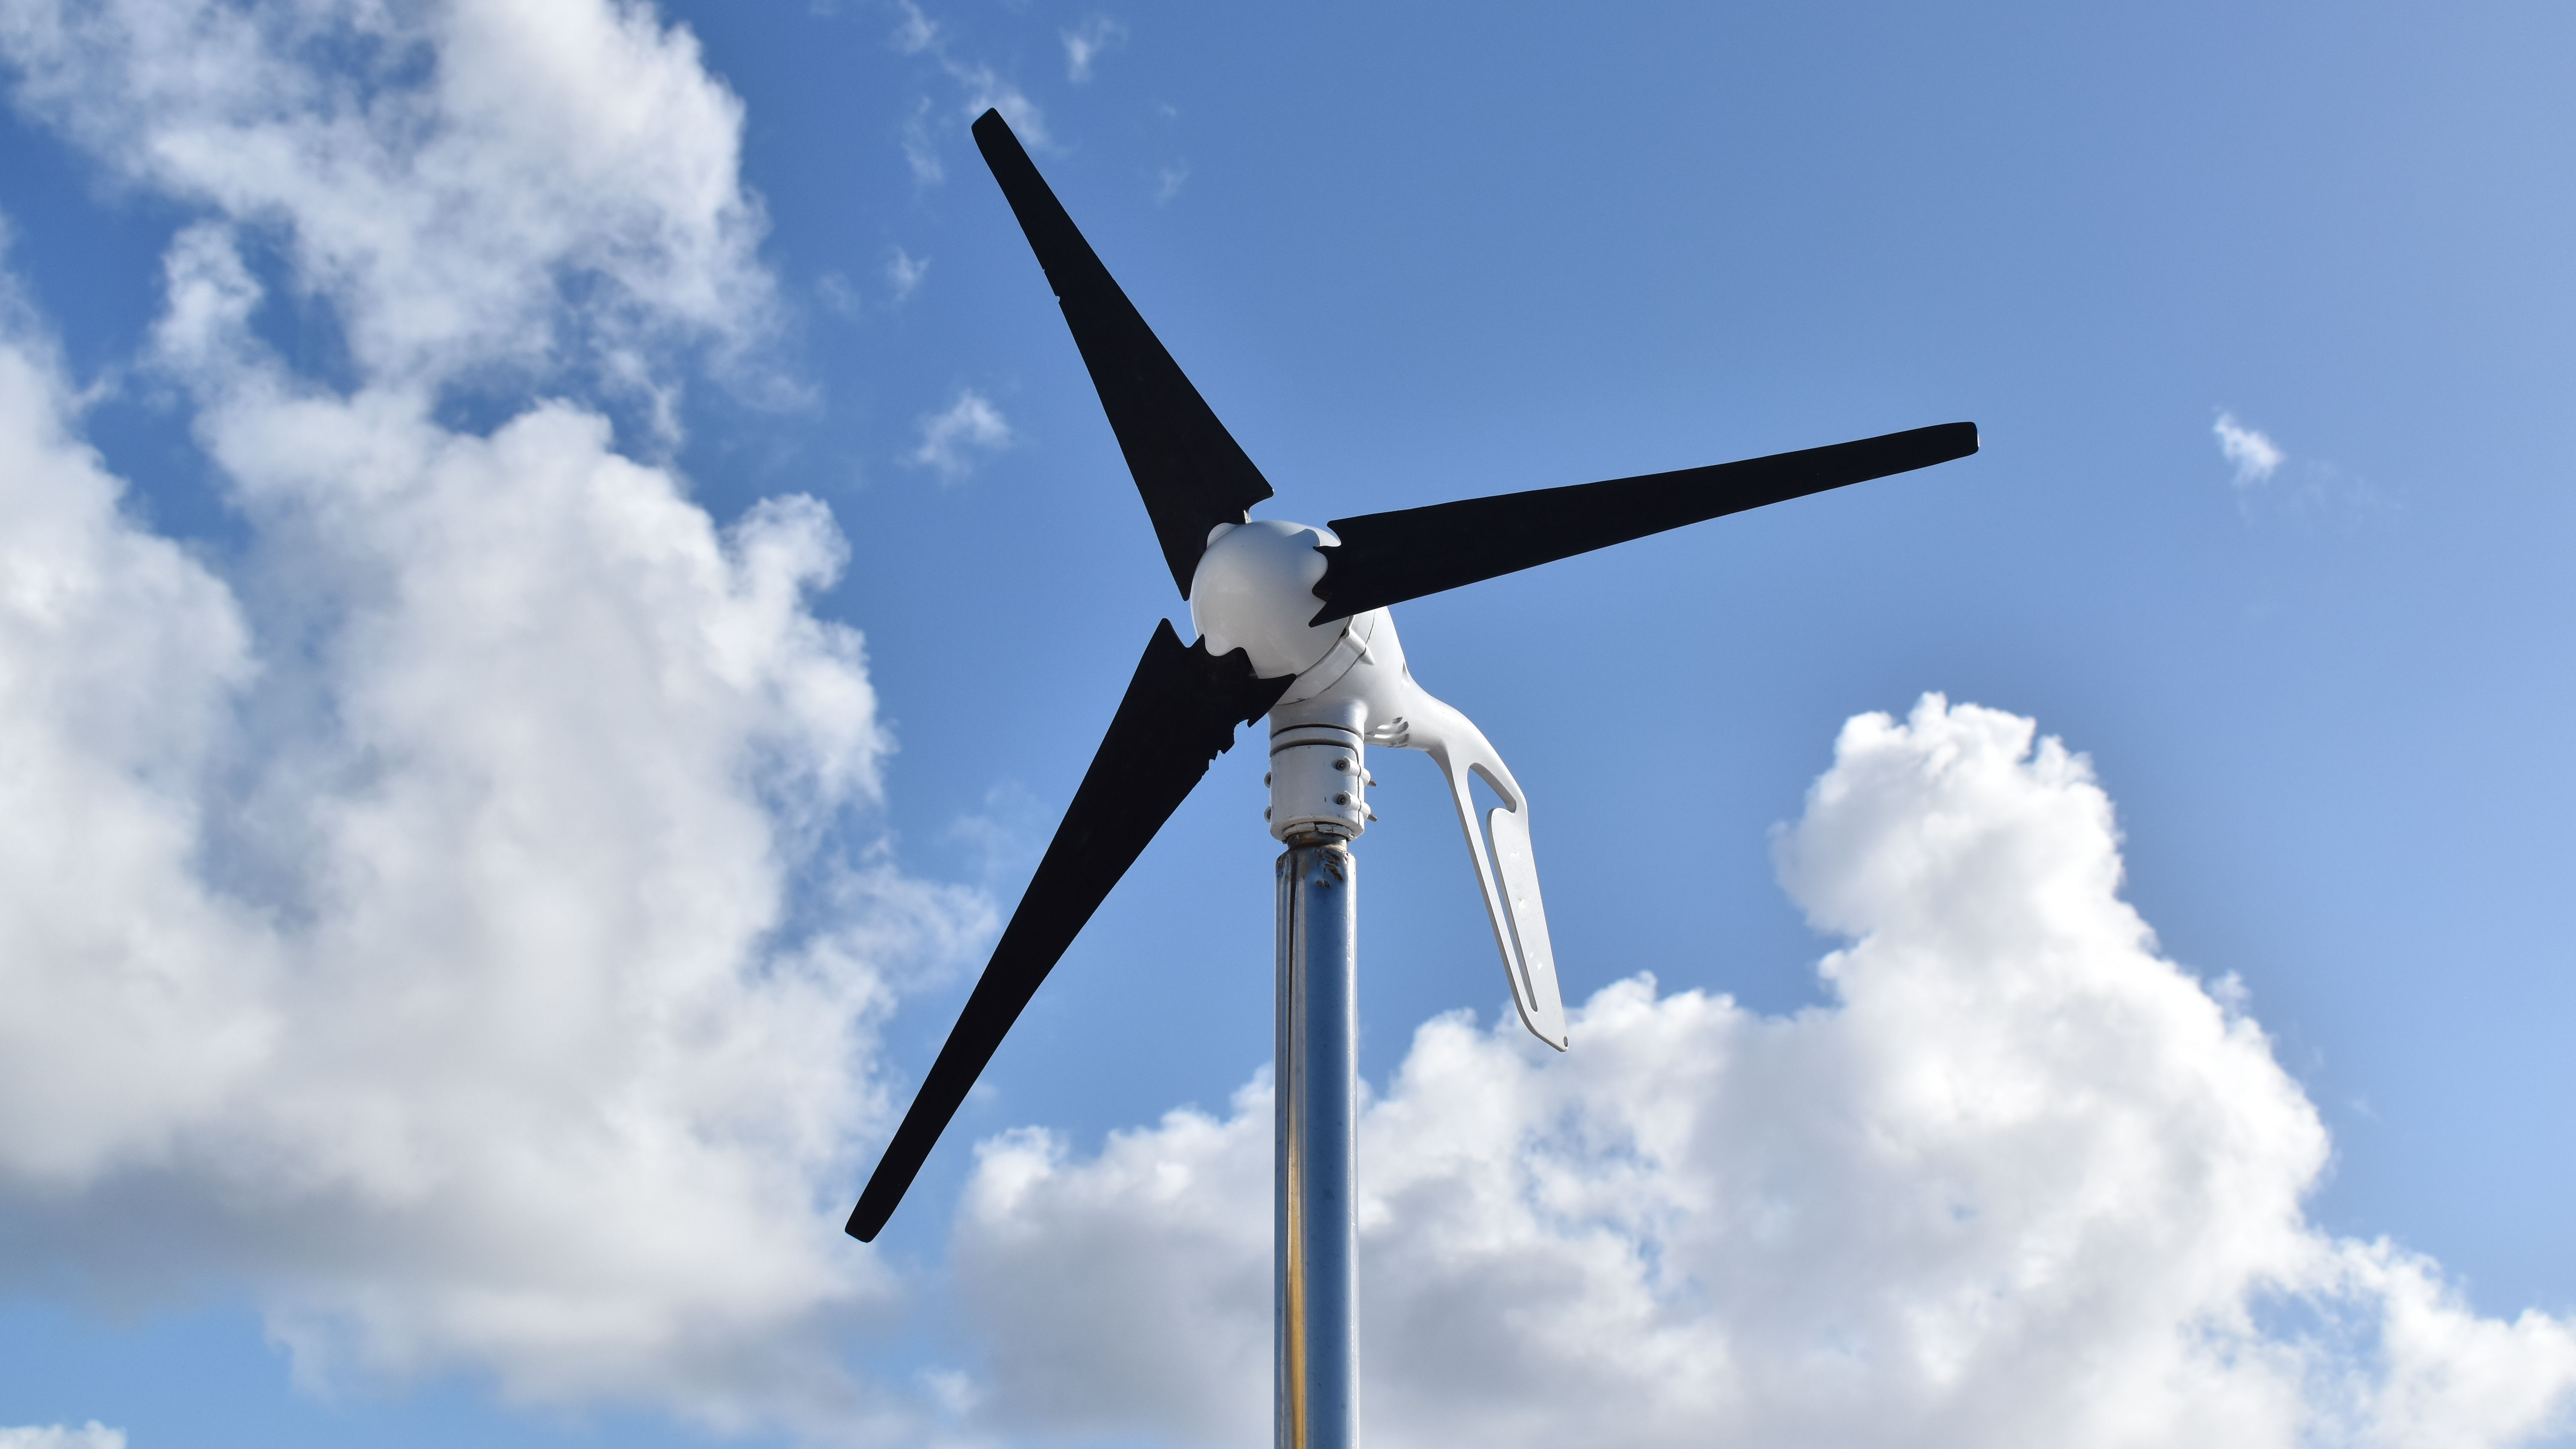 Eolienne : comment choisir